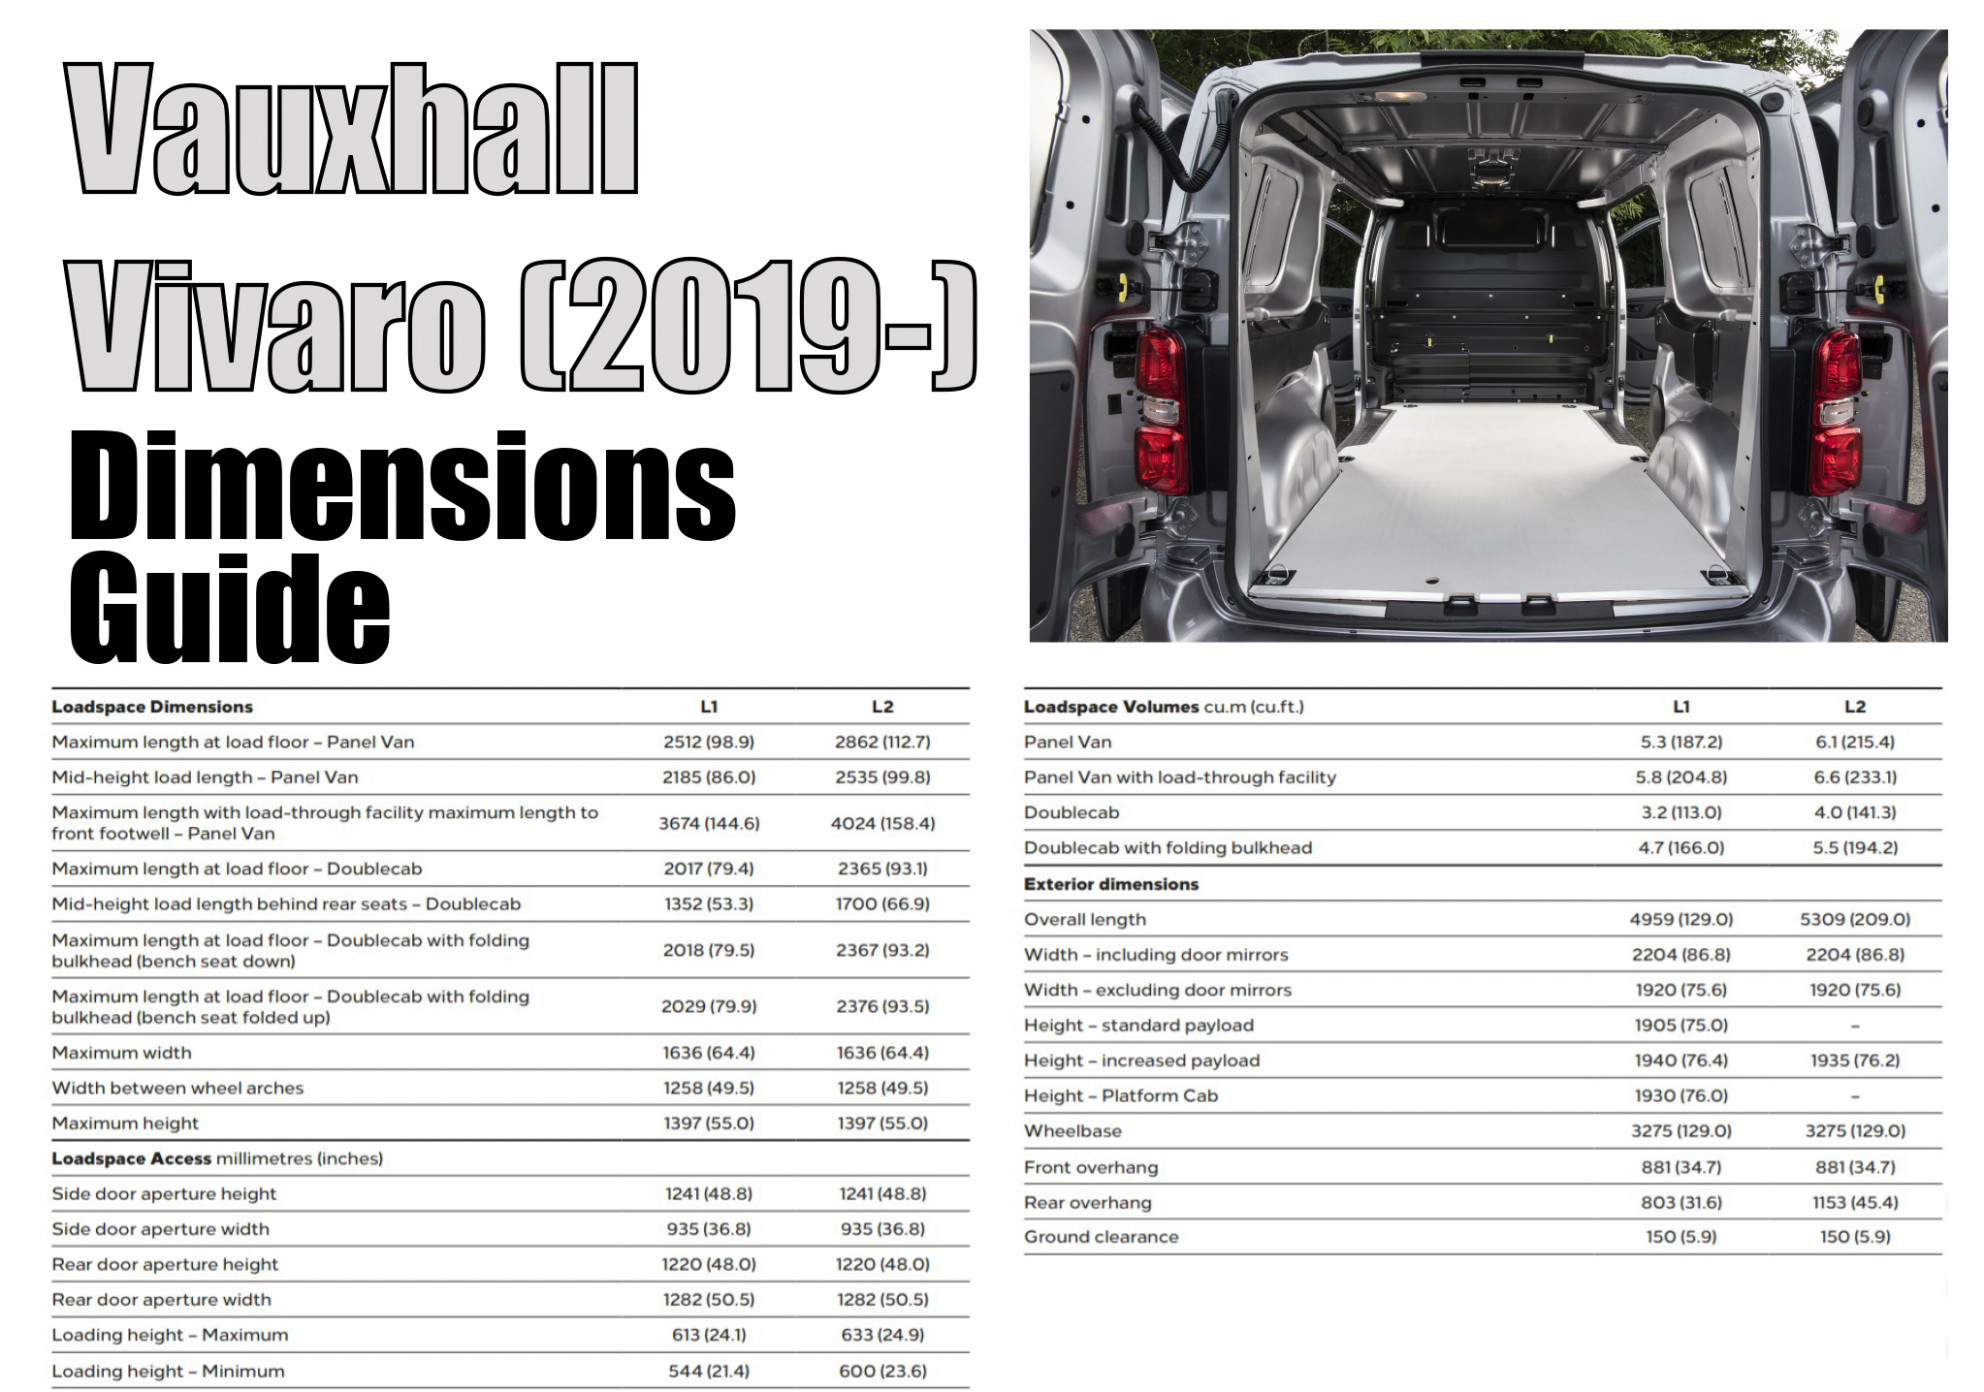 Vauxhall Vivaro Dimensions - Exterior and Interior | VanGuide.co